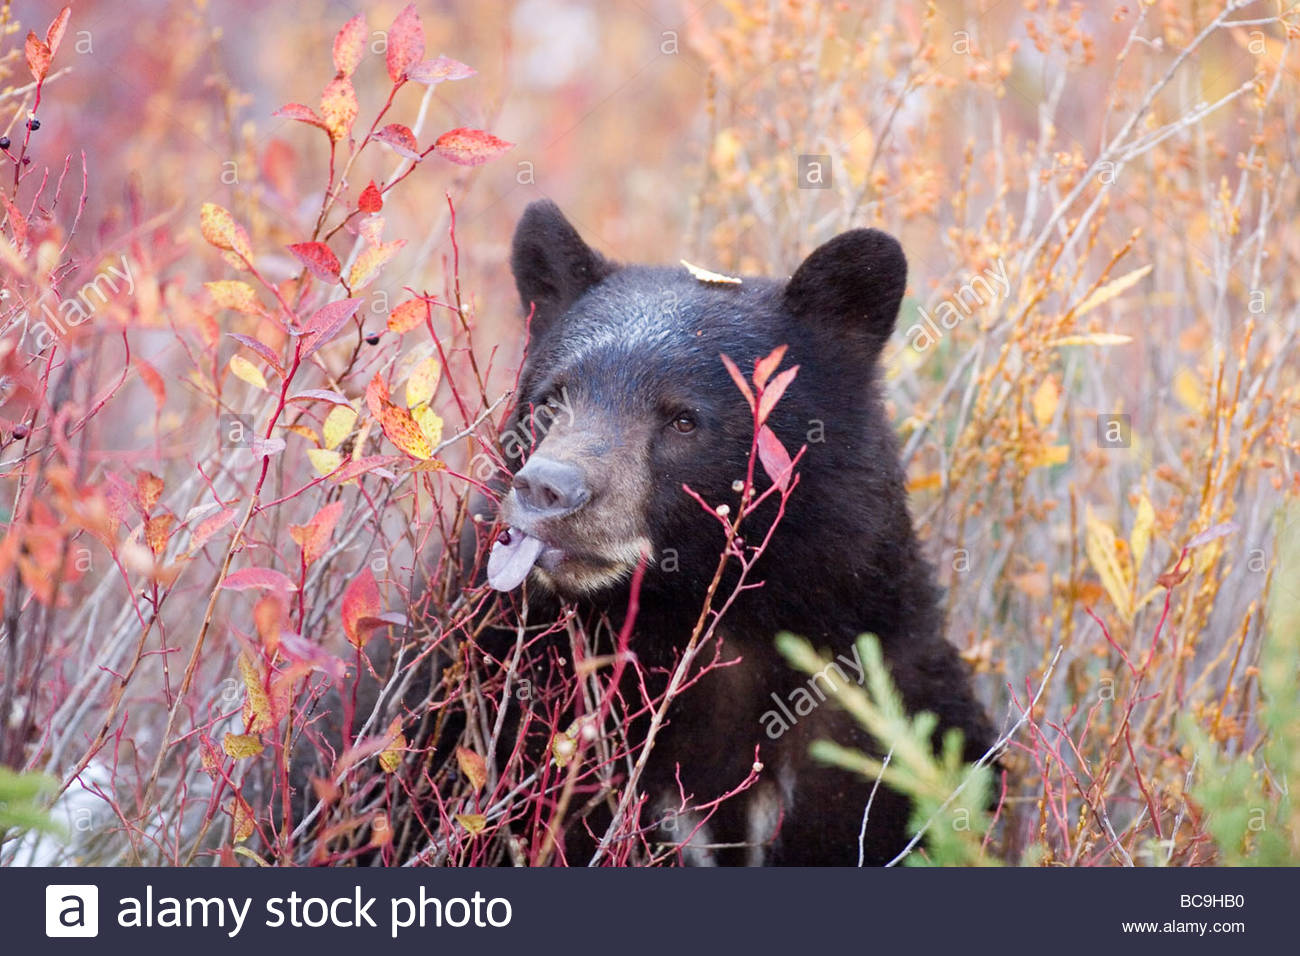 A black bear eats a blueberry while adding weight for hibernation. - Stock Image